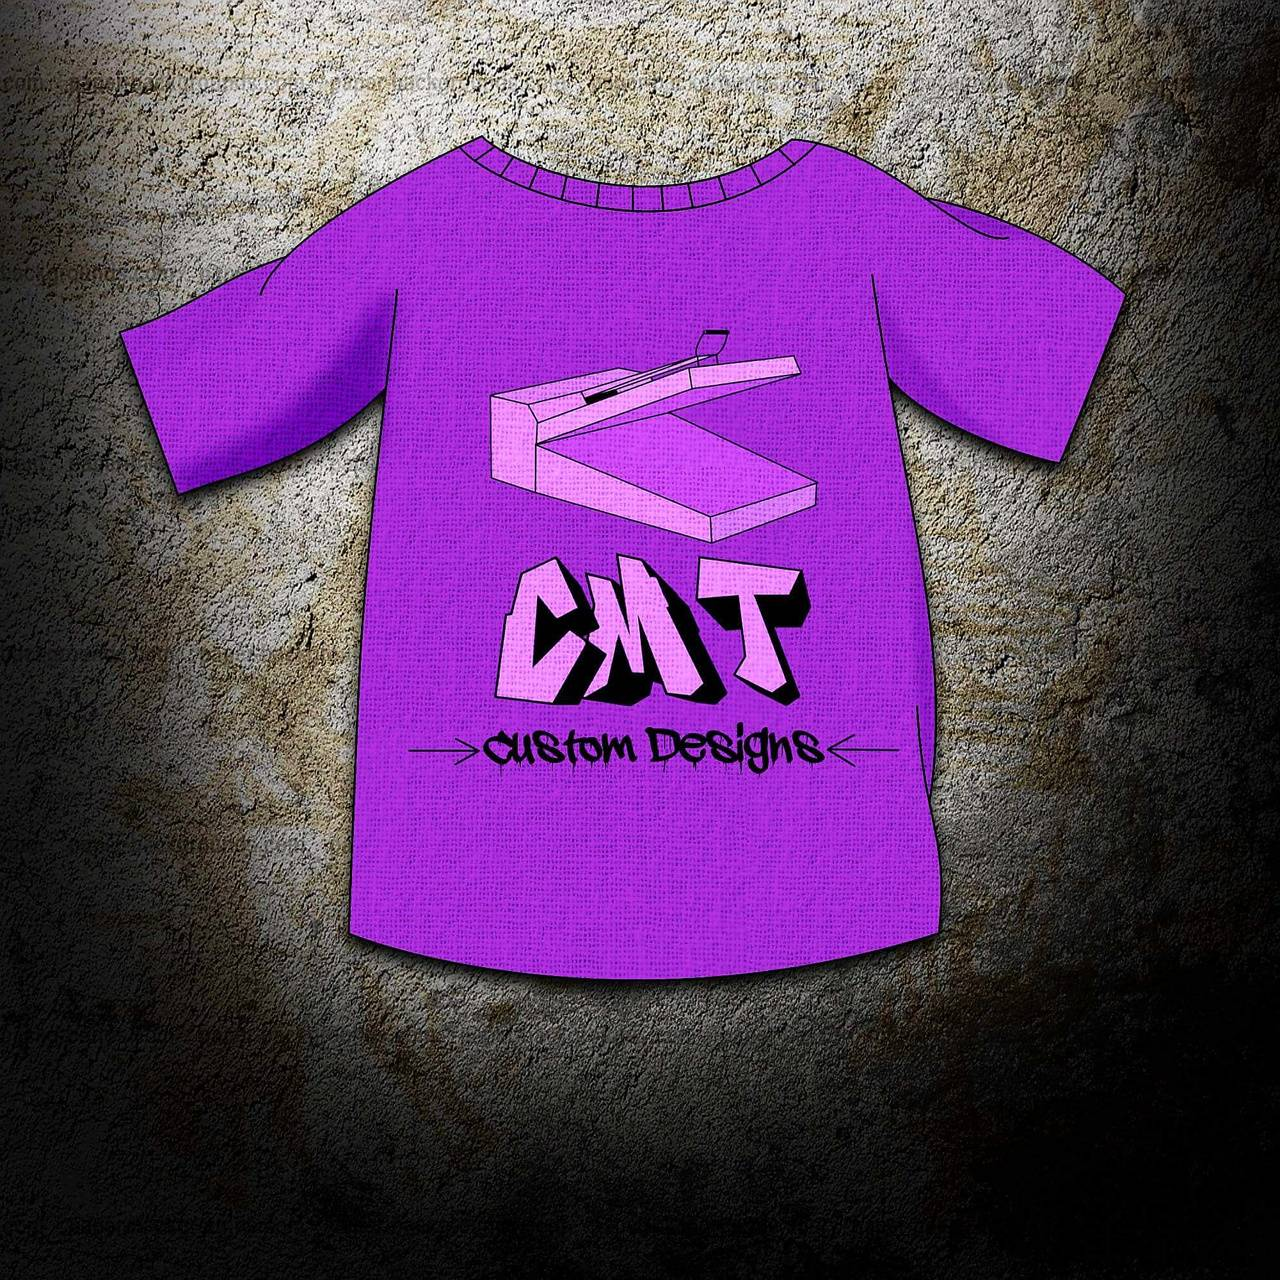 Cmt custom design